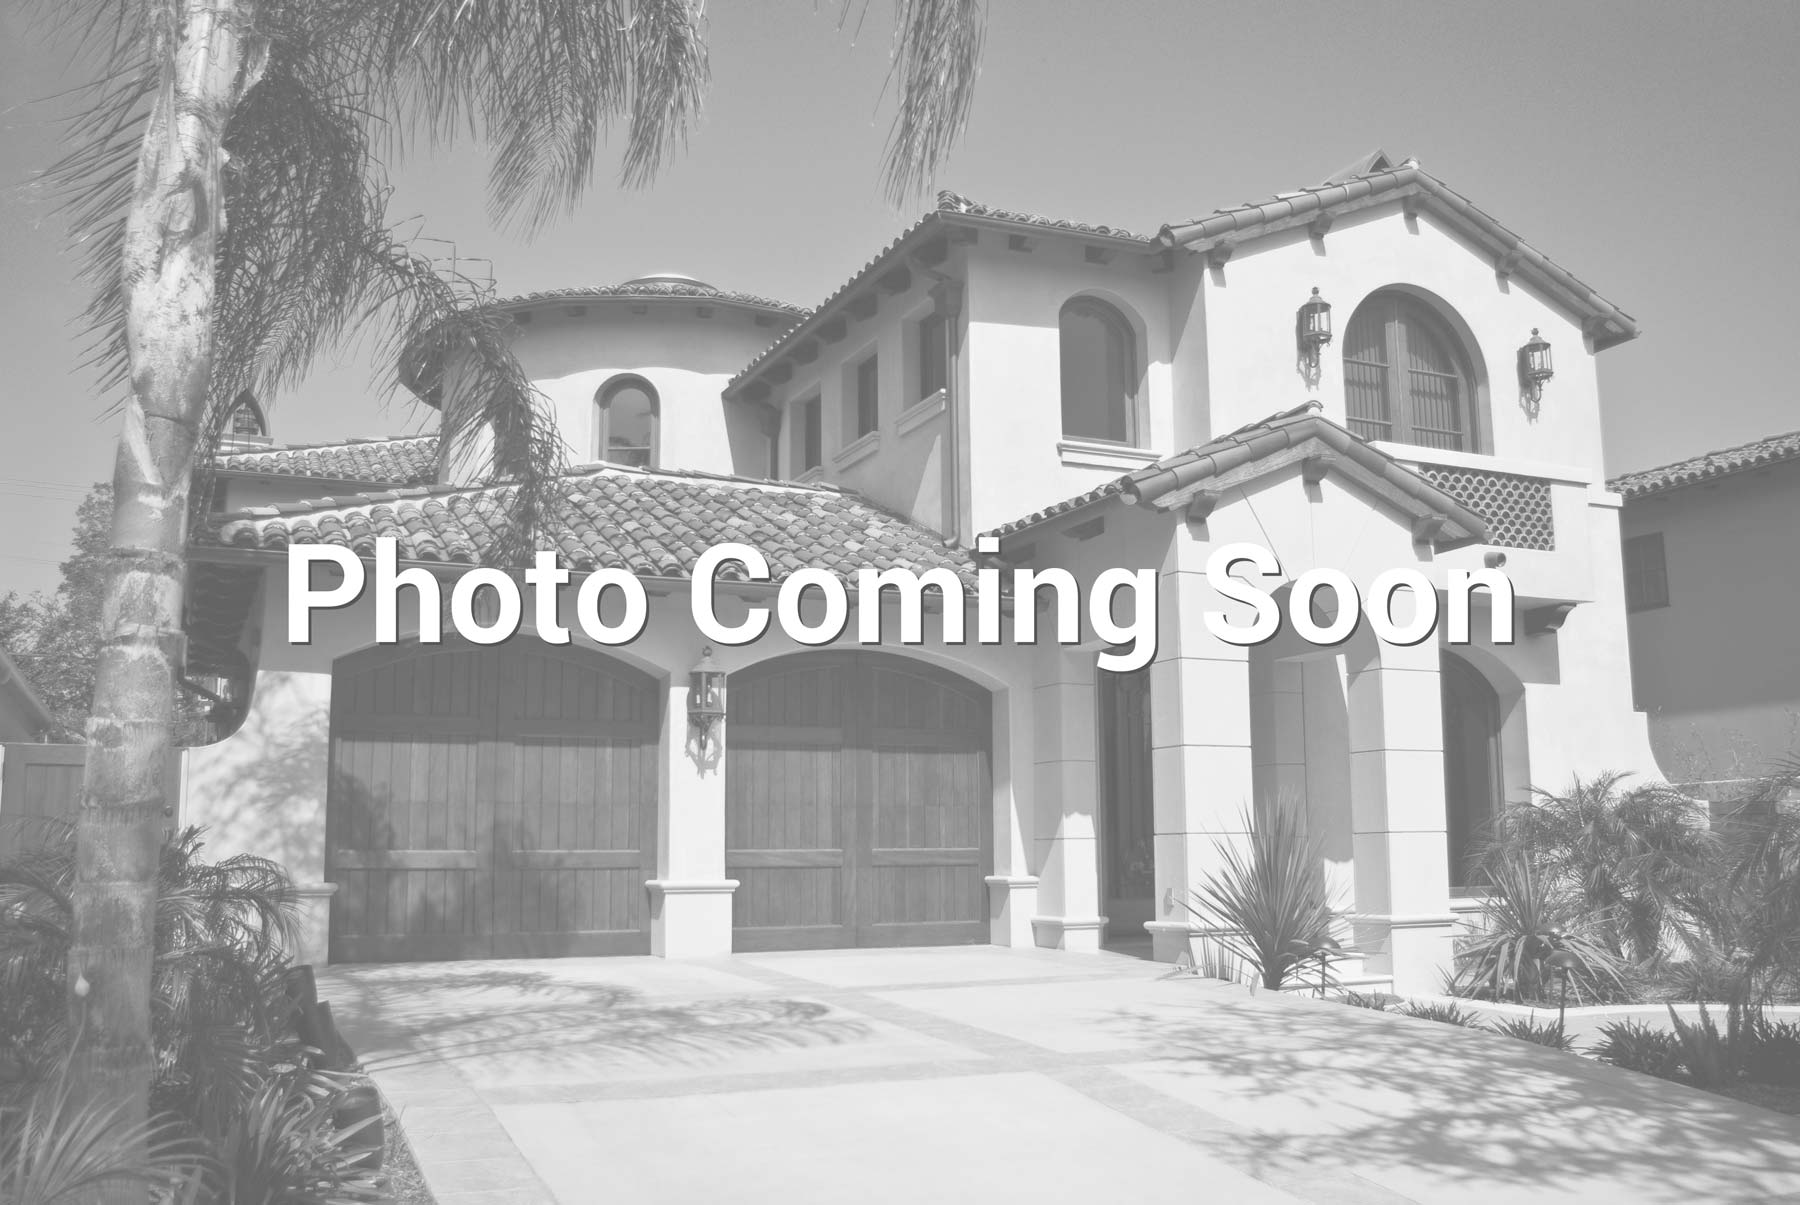 $85,000 - 3Br/2Ba -  for Sale in Upland